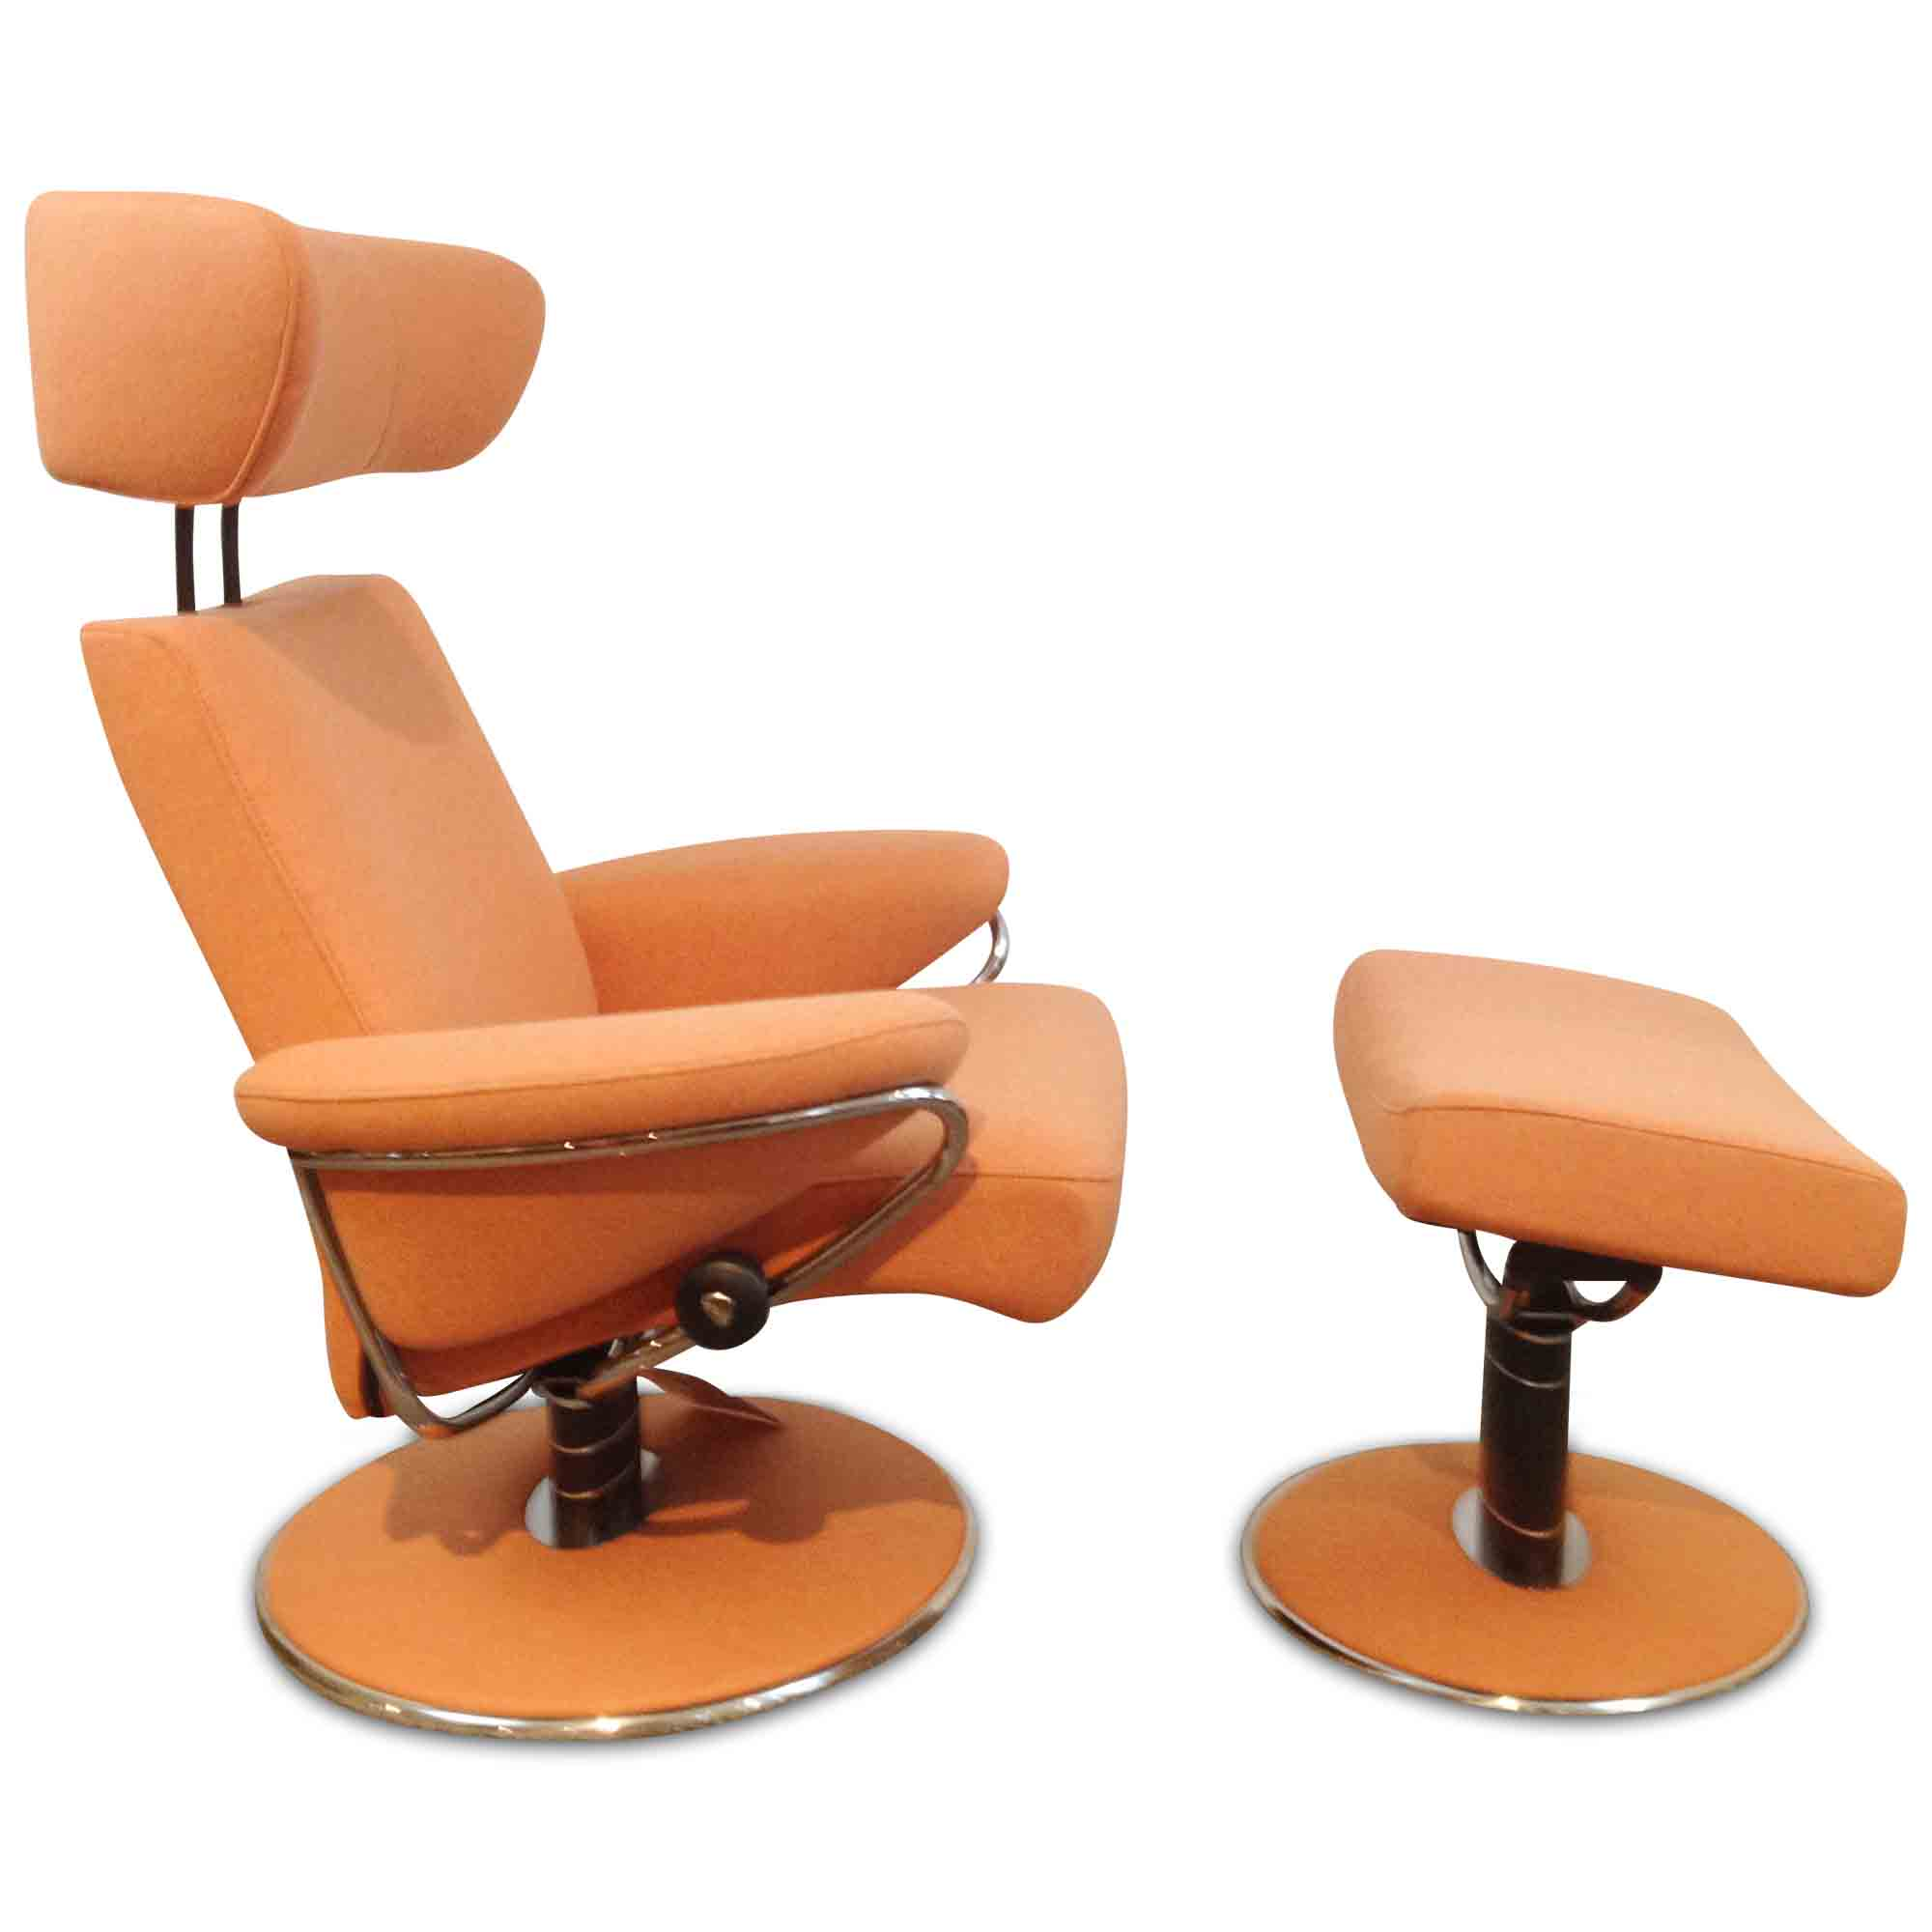 Stressless Designer Sessel Jazz Mit Hocker Stoff Metall Orange